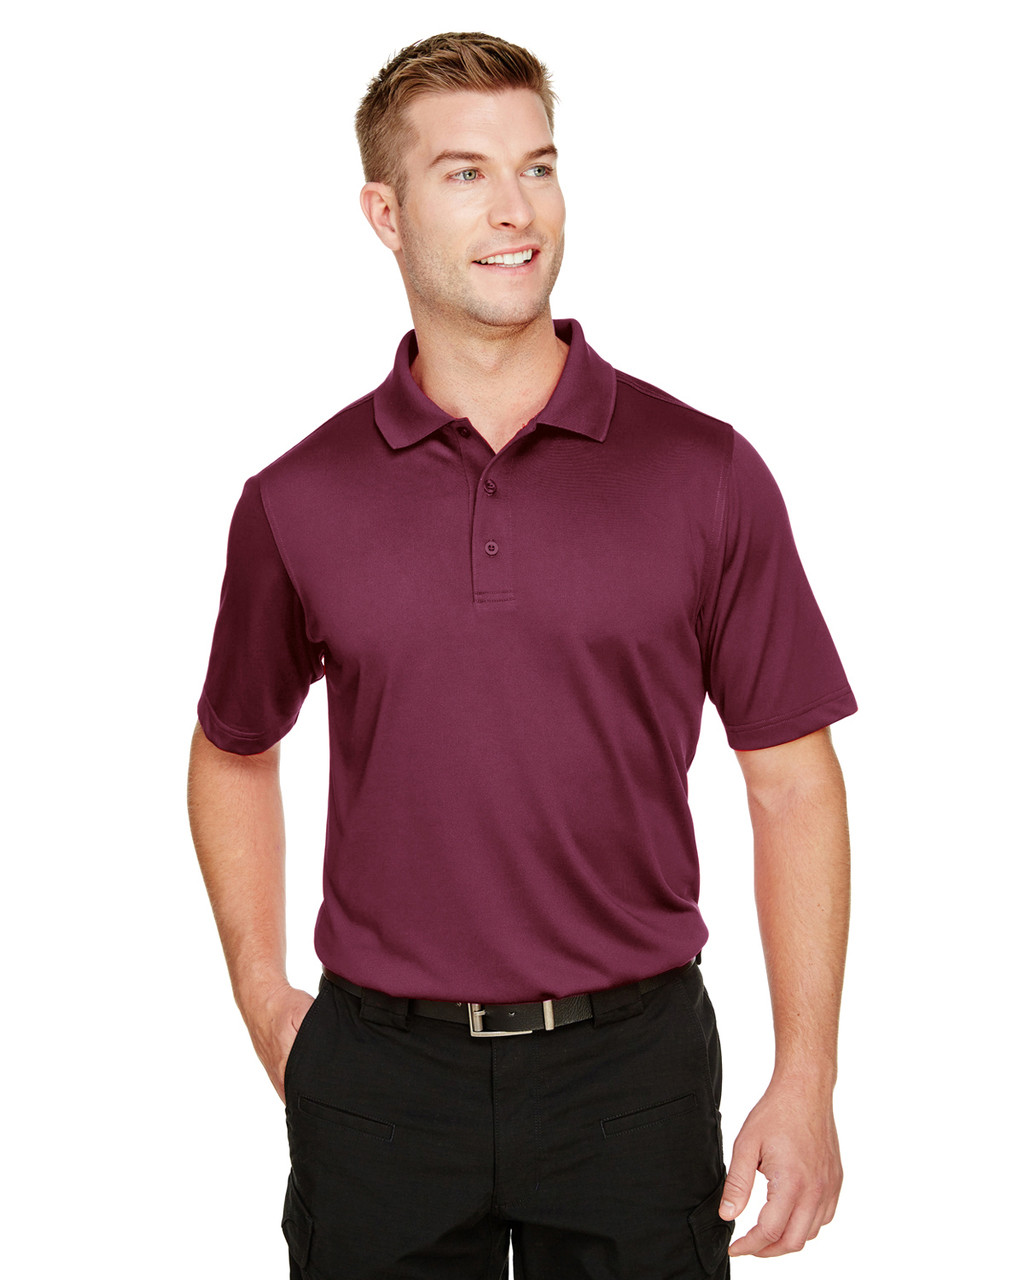 Maroon - M348 Harriton Men's Advantage Snag Protection Plus IL Polo Shirt | BlankClothing.ca